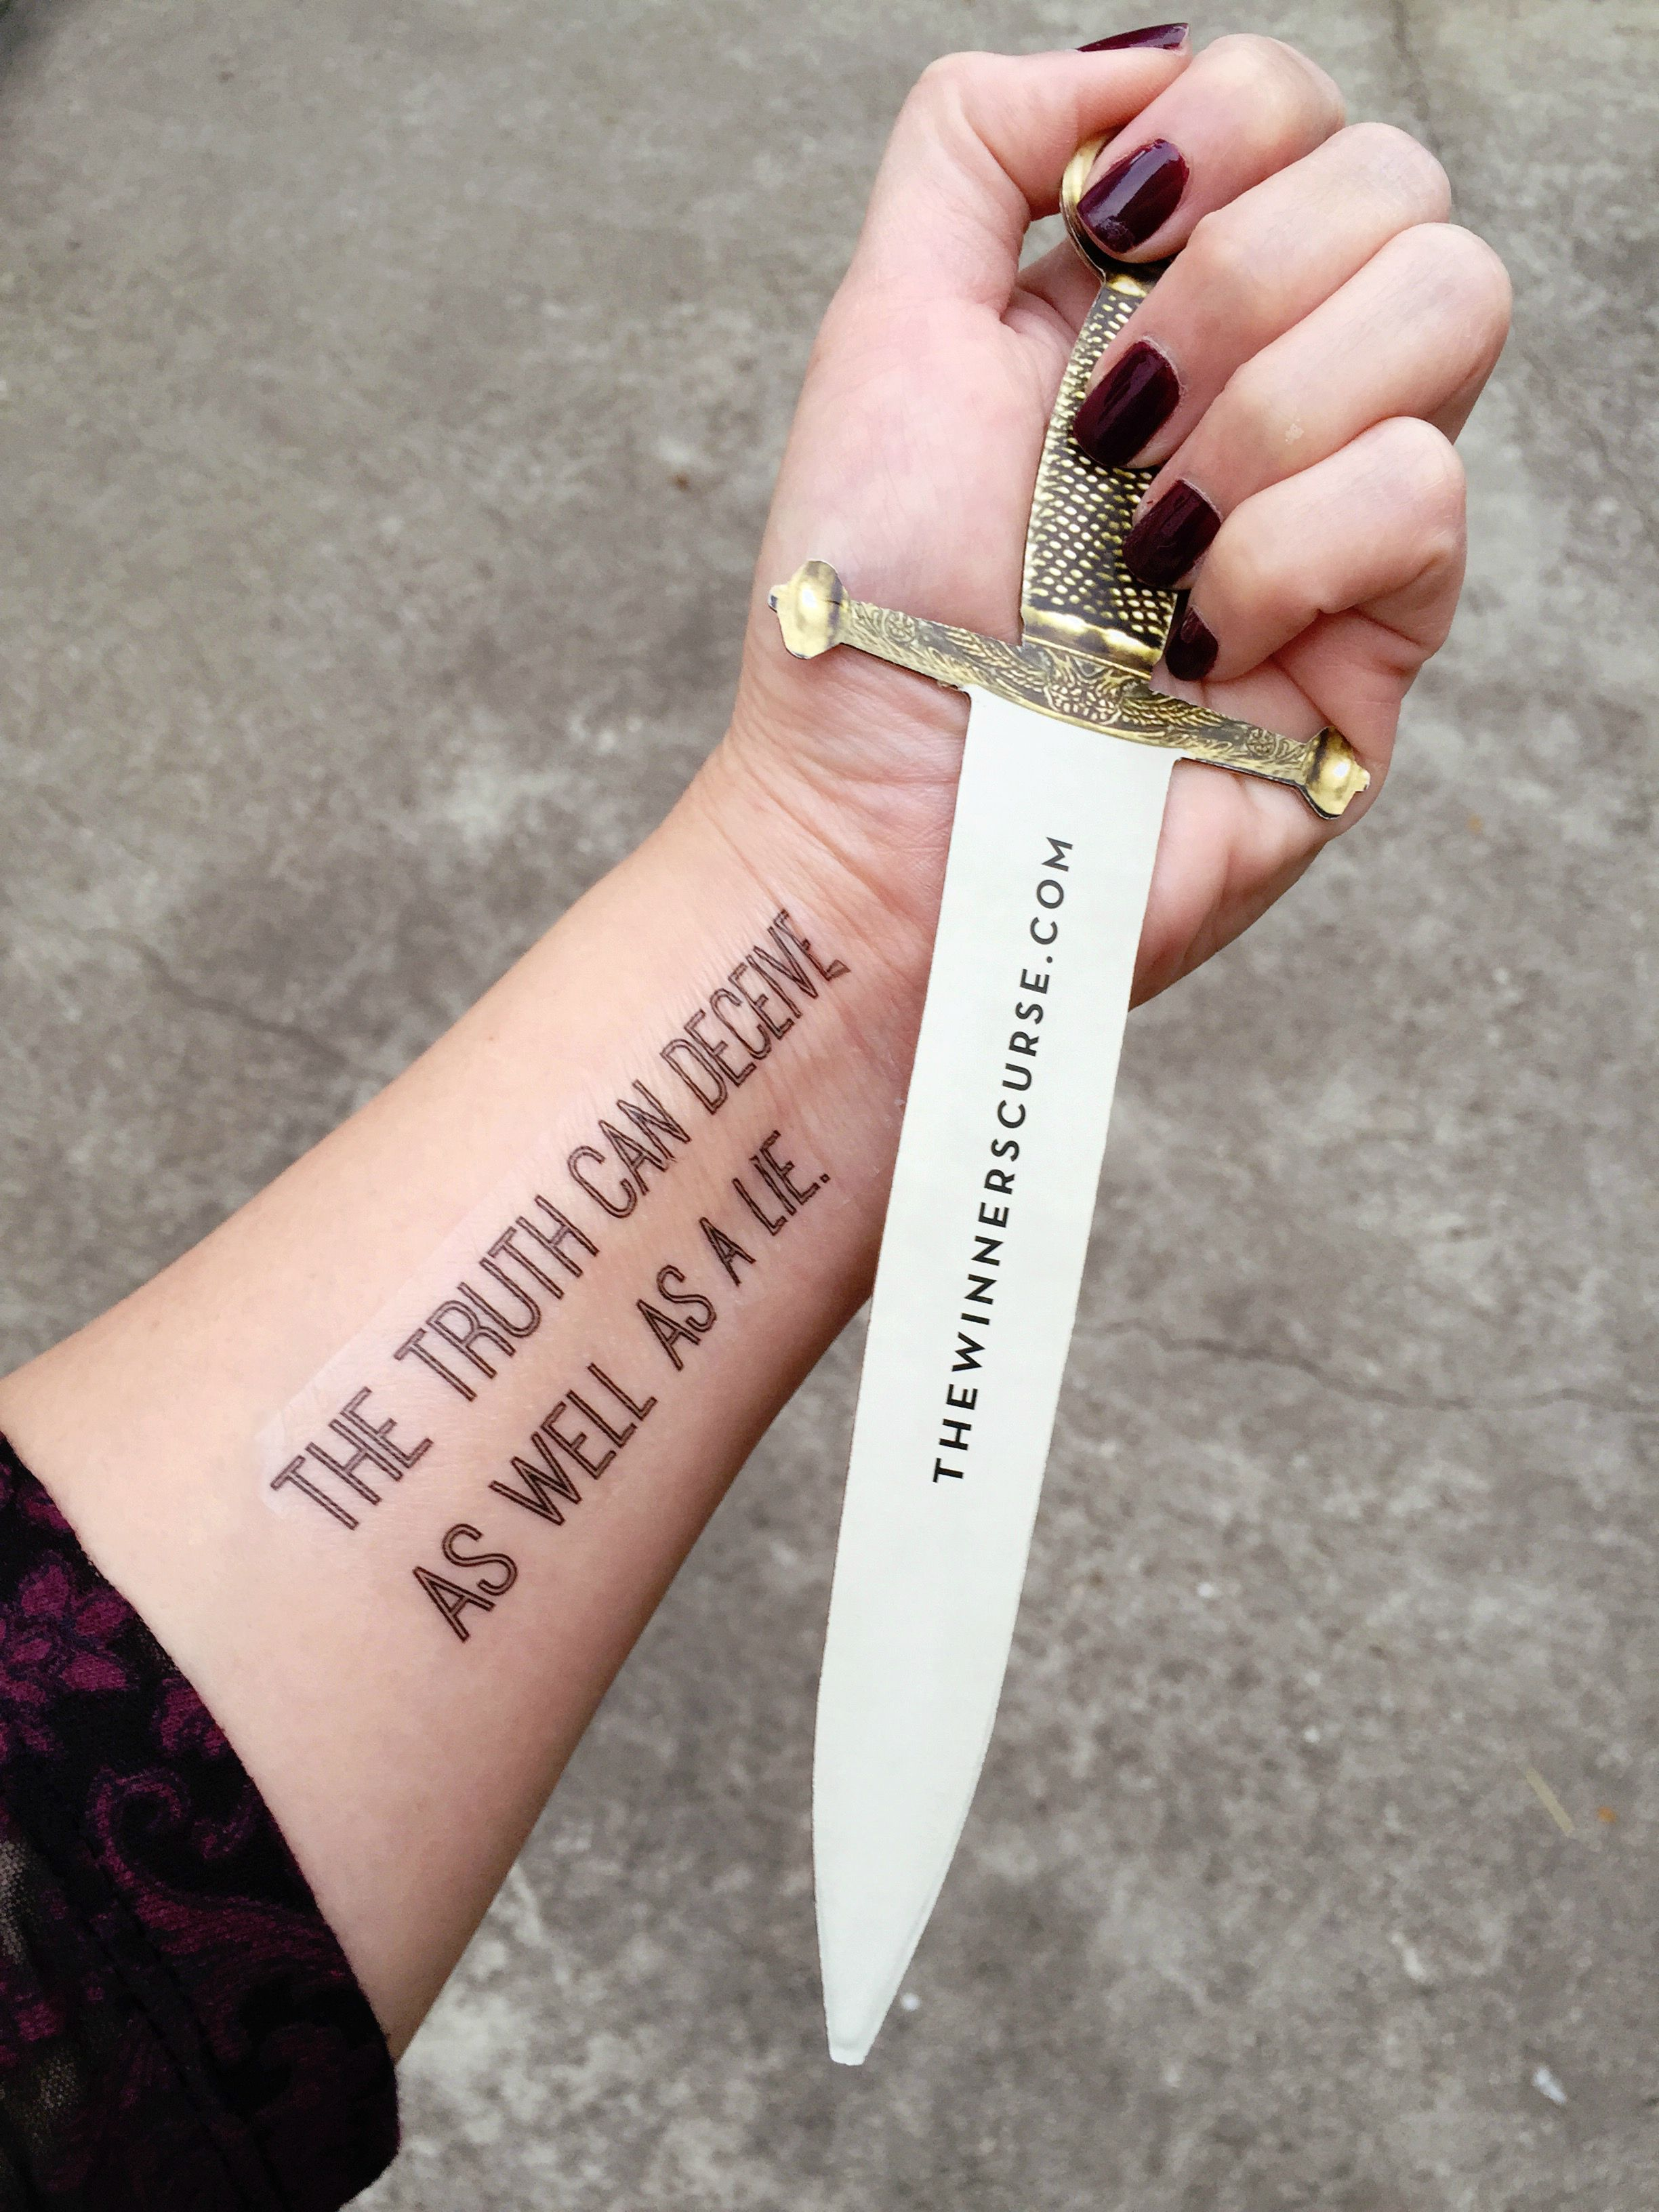 Where To Get Temporary Henna Tattoos Near Me: Make Your Own Temporary Book-inspired Tattoos